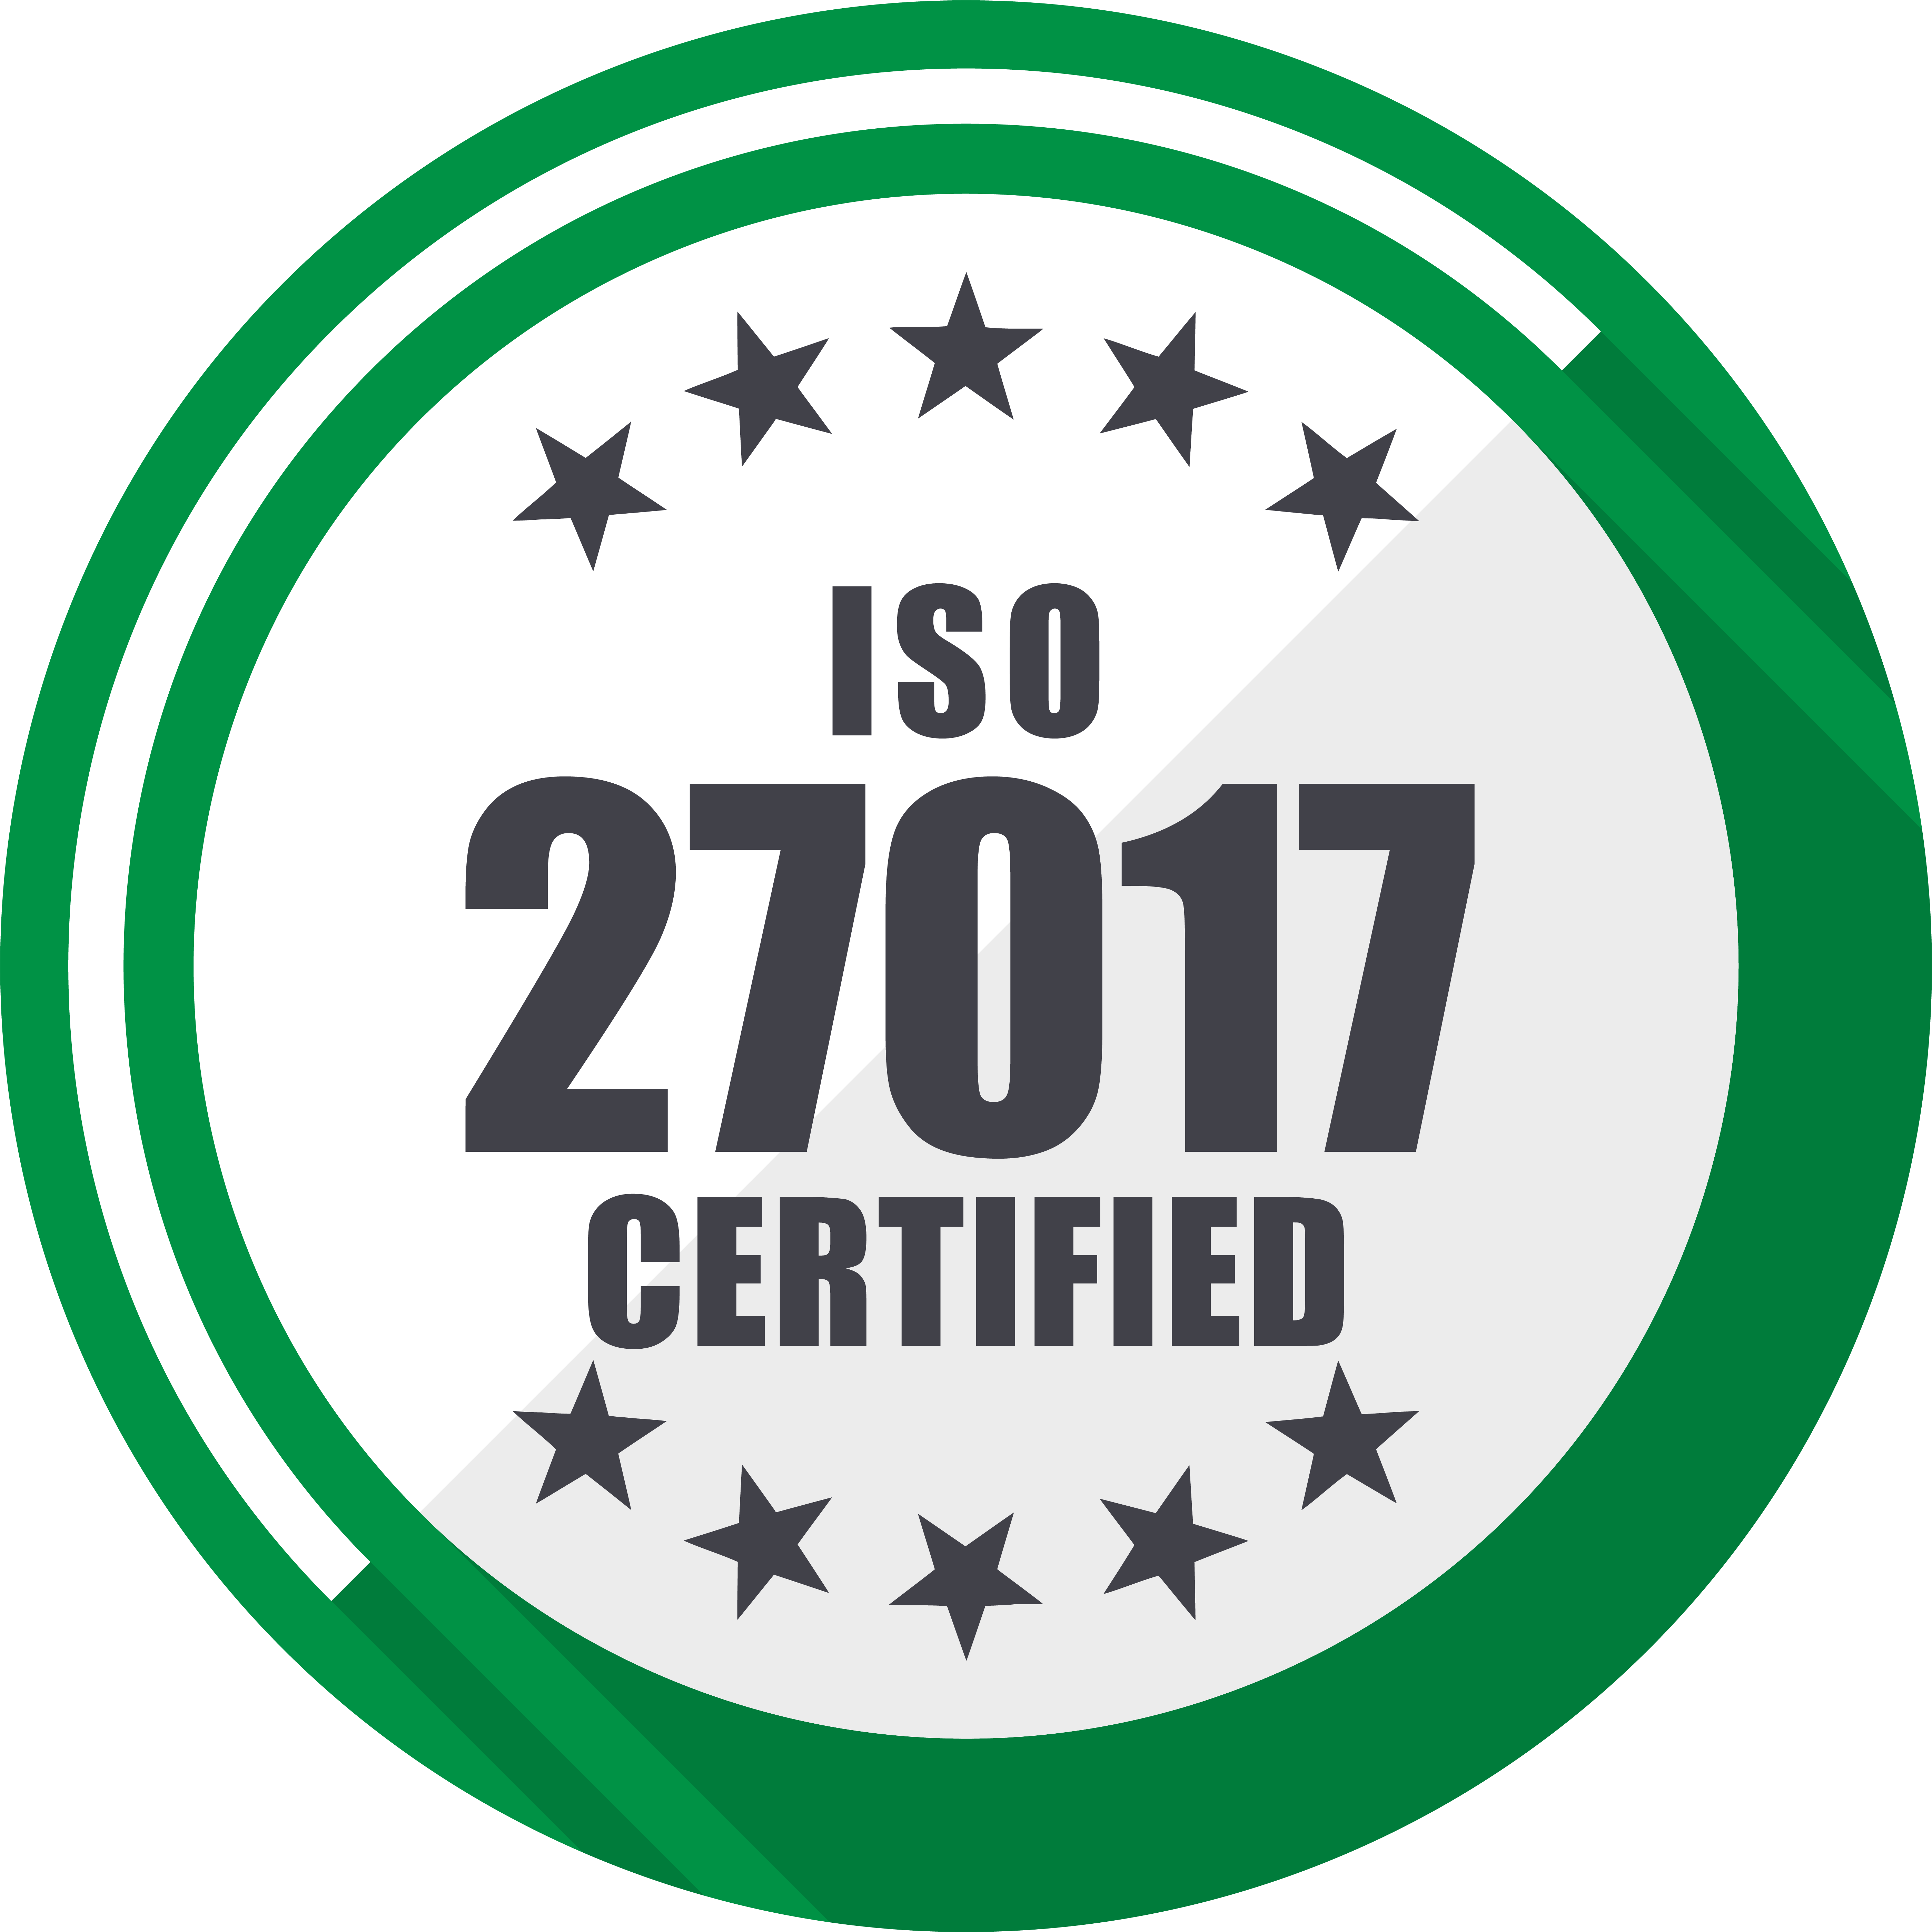 ISO 27017 Certified